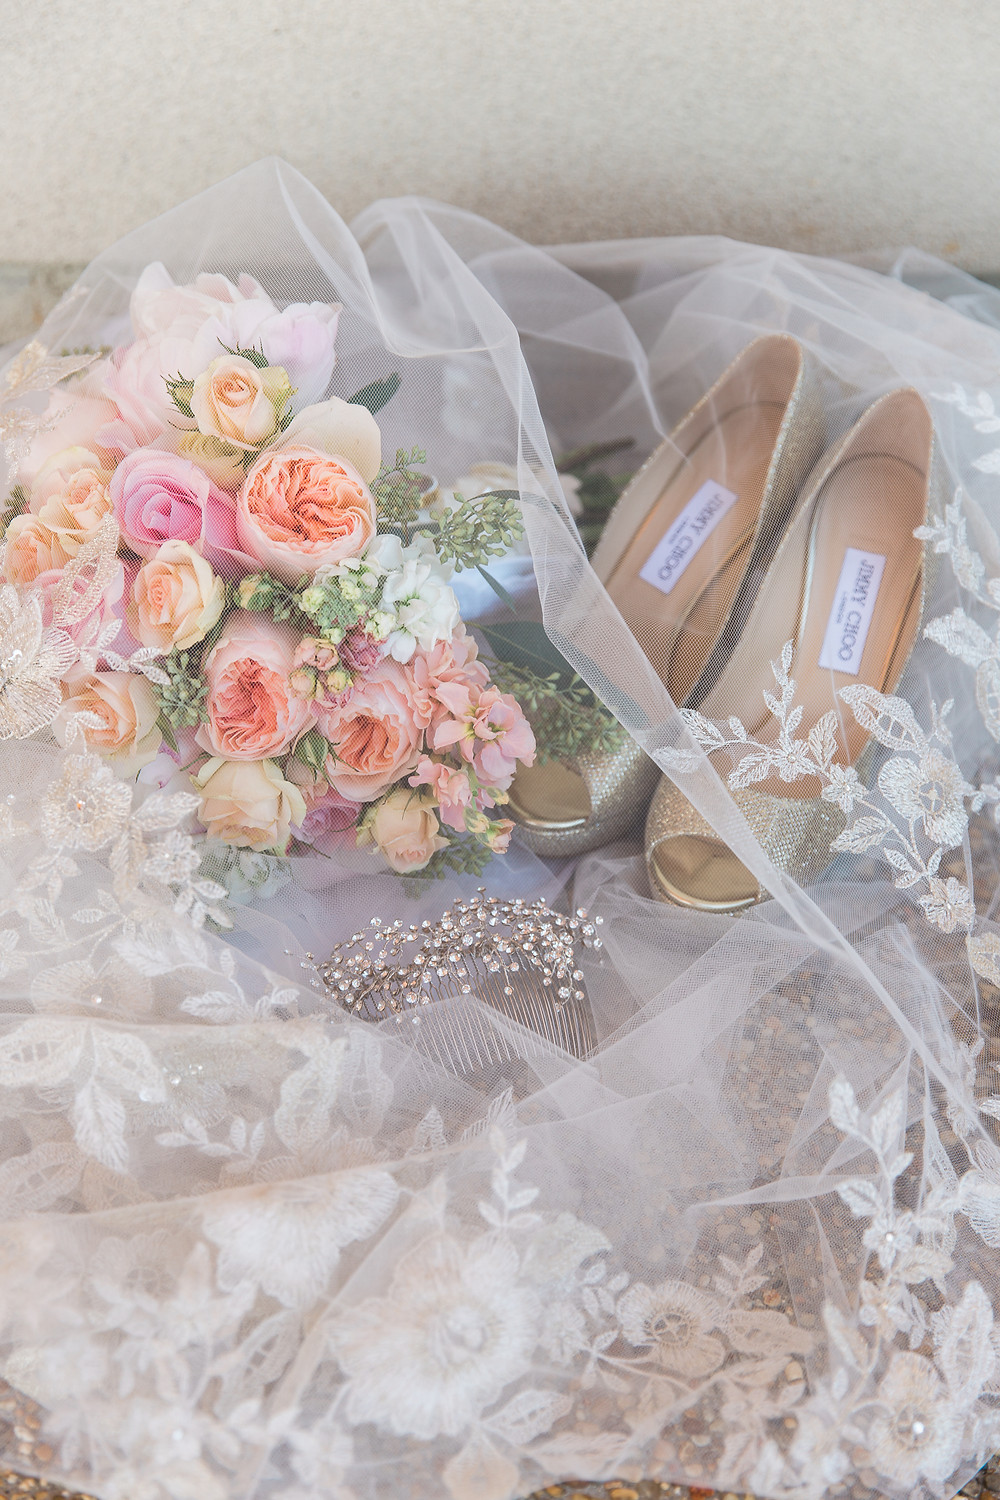 Lauren & Stanley | Laurel, Mississippi Wedding | The Gables | Lindsay Vallas Photography | Lovegood Wedding & Event Rentals | Jimmy Choo Bridal Shoes